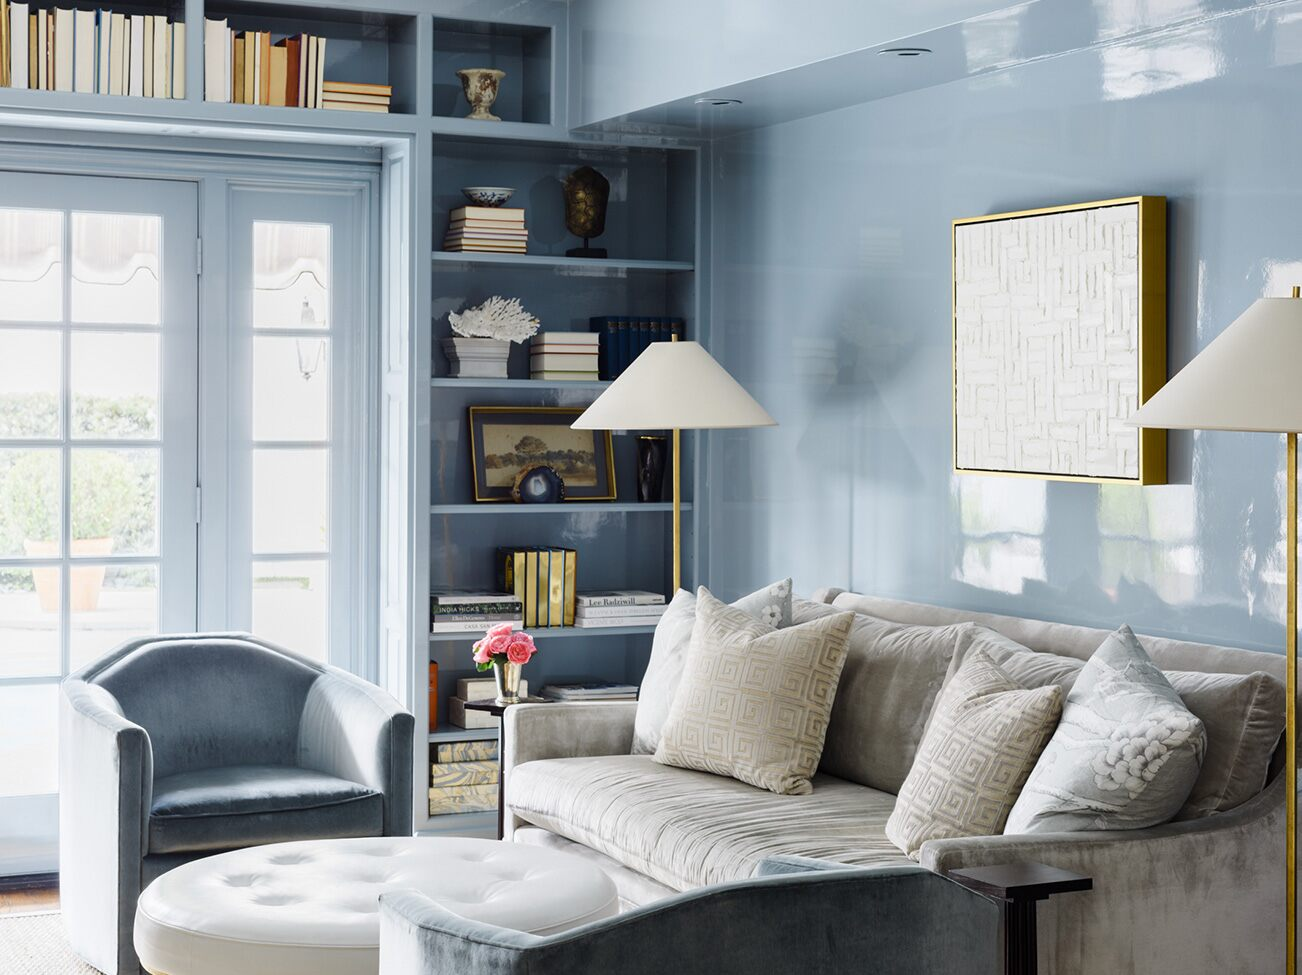 A pale blue, high gloss-painted study, gray couch, white leather ottoman, blue chairs, and a light-filled French door.